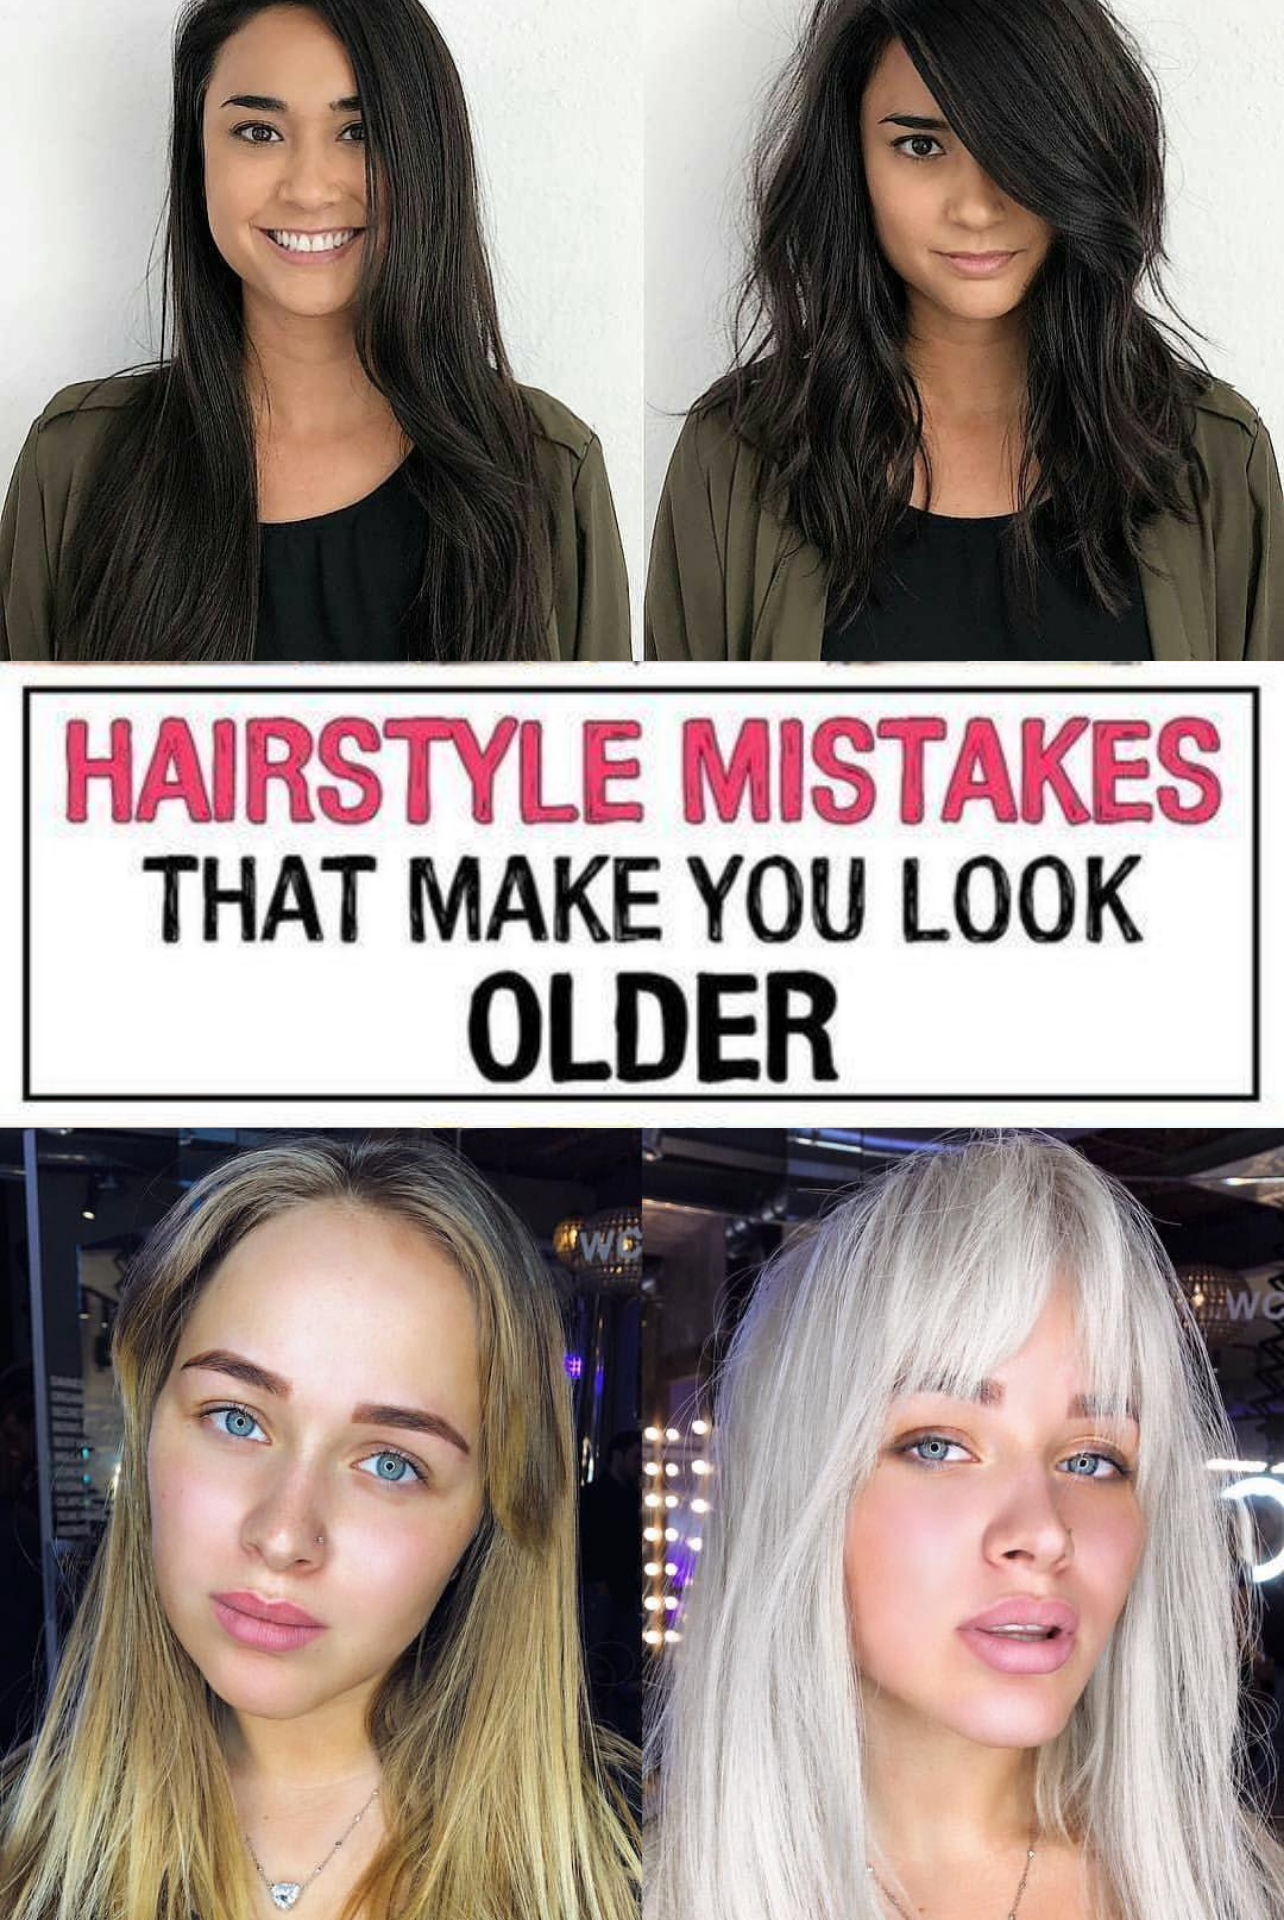 37 Hairstyle Mistakes That Are Aging You In 2020 Beauty Tips For Face Hairstyle Hair Advice